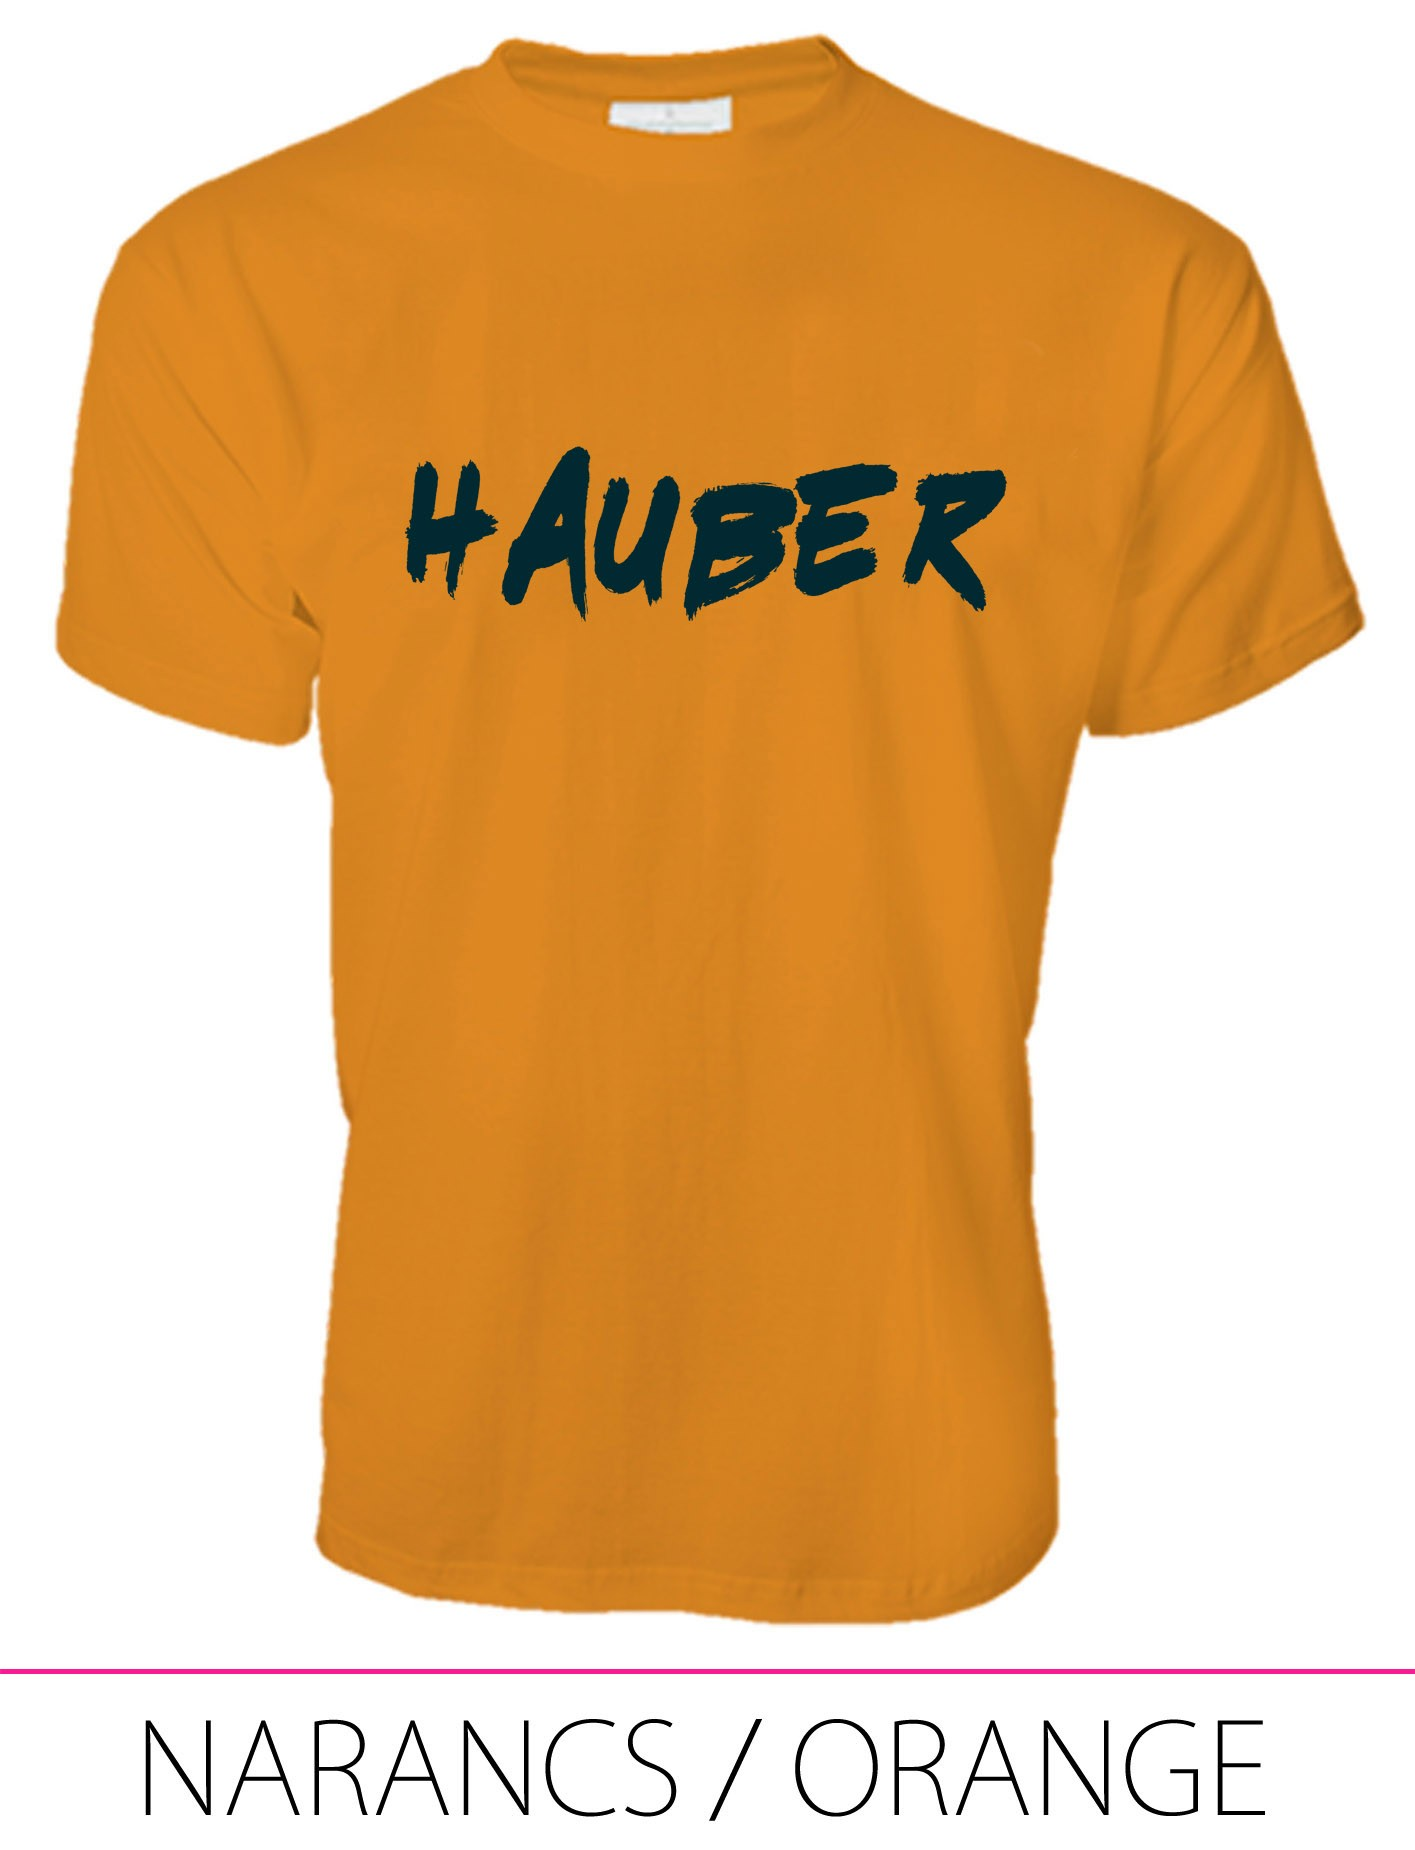 MEN PREMIUM CREW NECK T-SHIRT HAUBER ORANGE